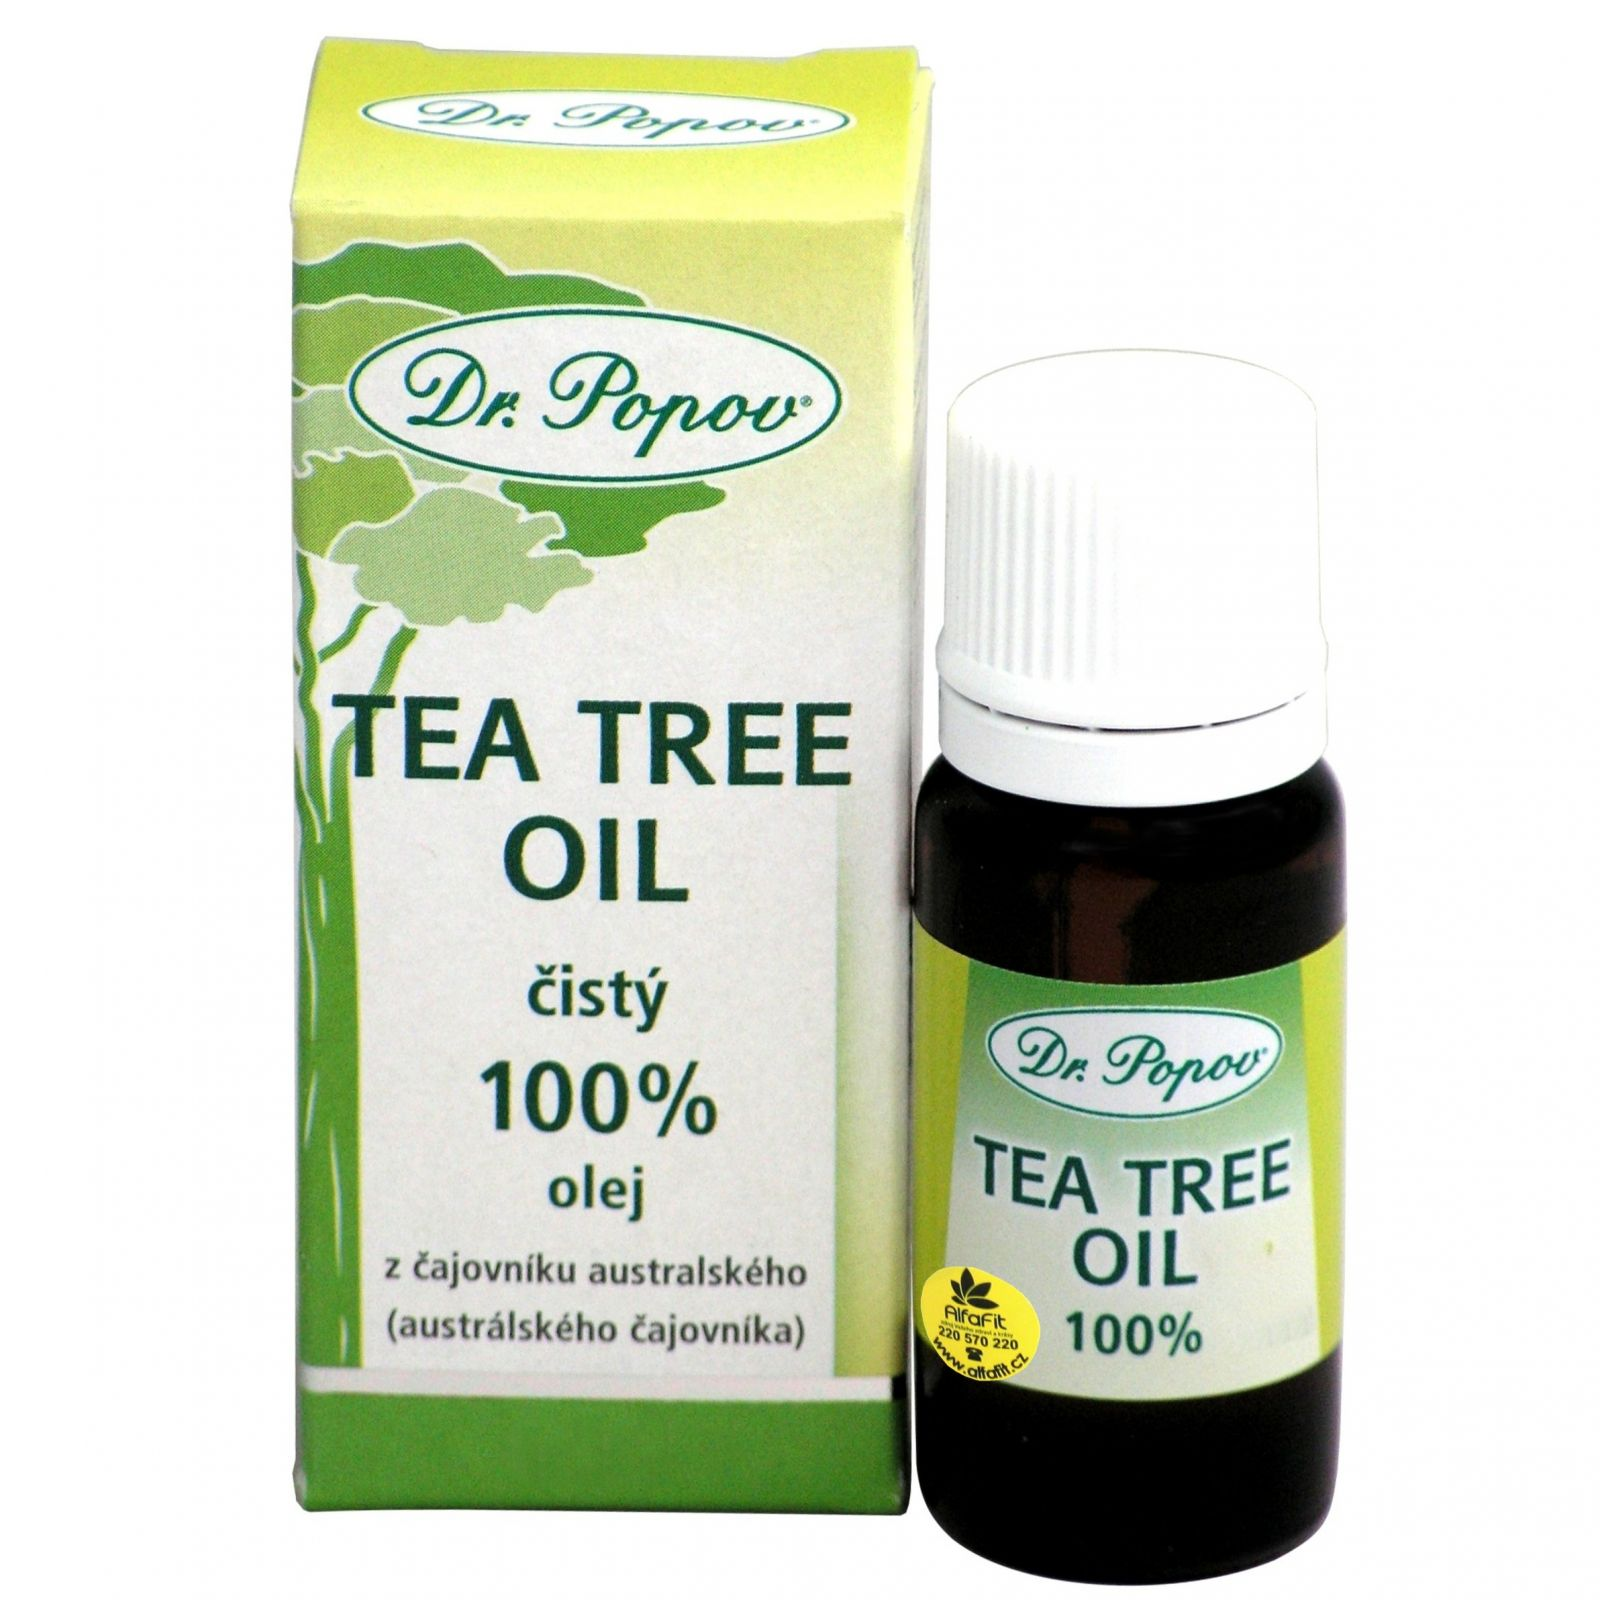 Dr. Popov Tea tree oil 25 ml